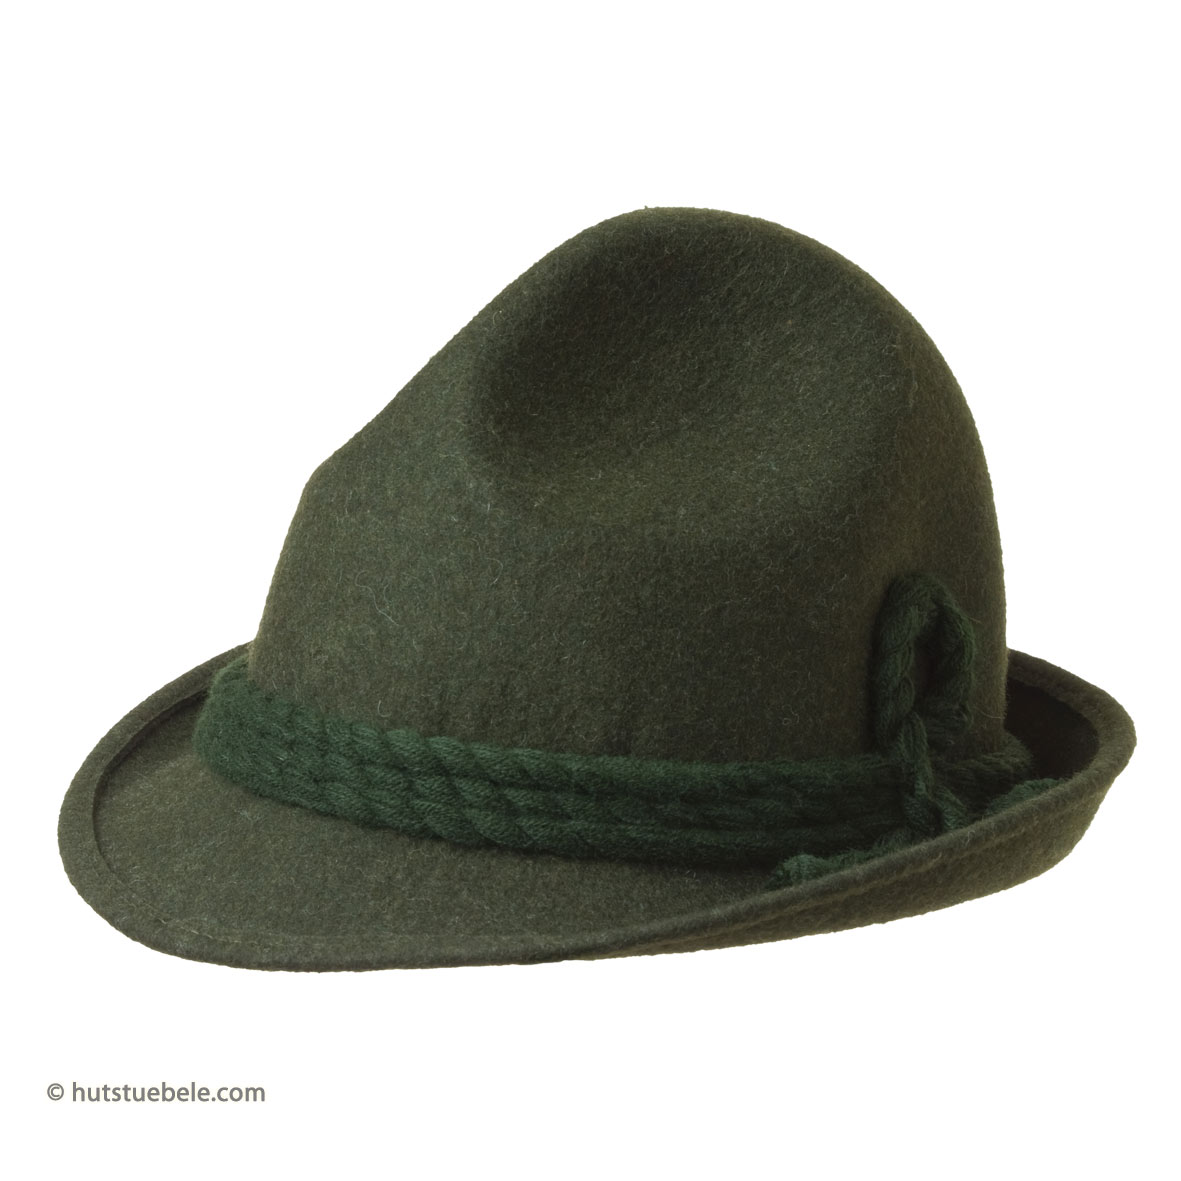 d947d606c23 hunting hat with wool cord